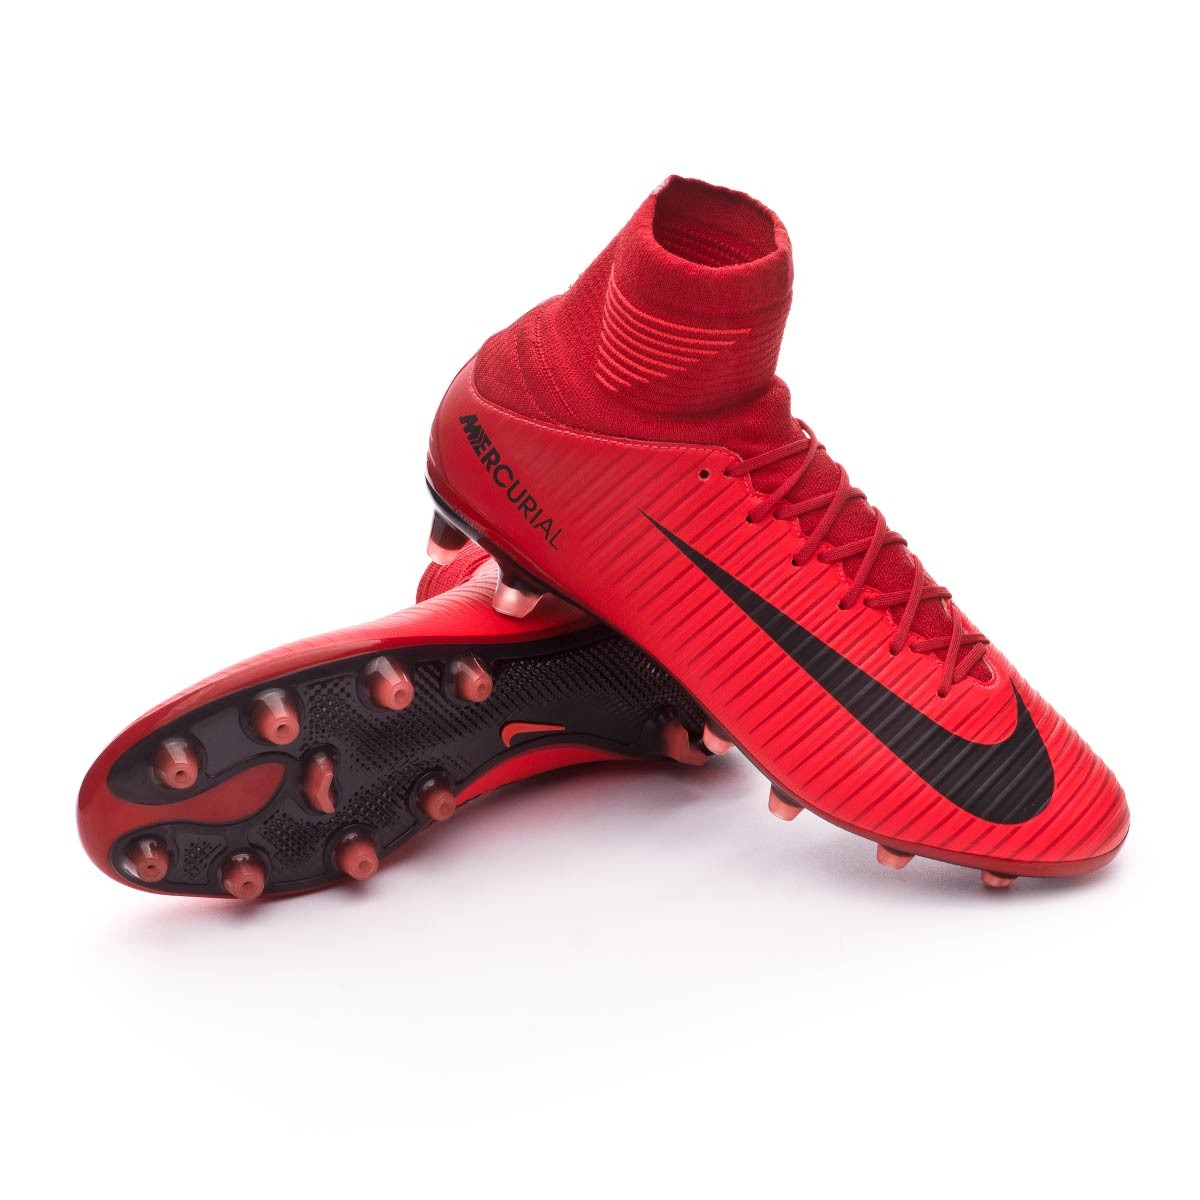 4b0d8005e41be Football Boots Nike Mercurial Veloce III DF AG-Pro University red ...